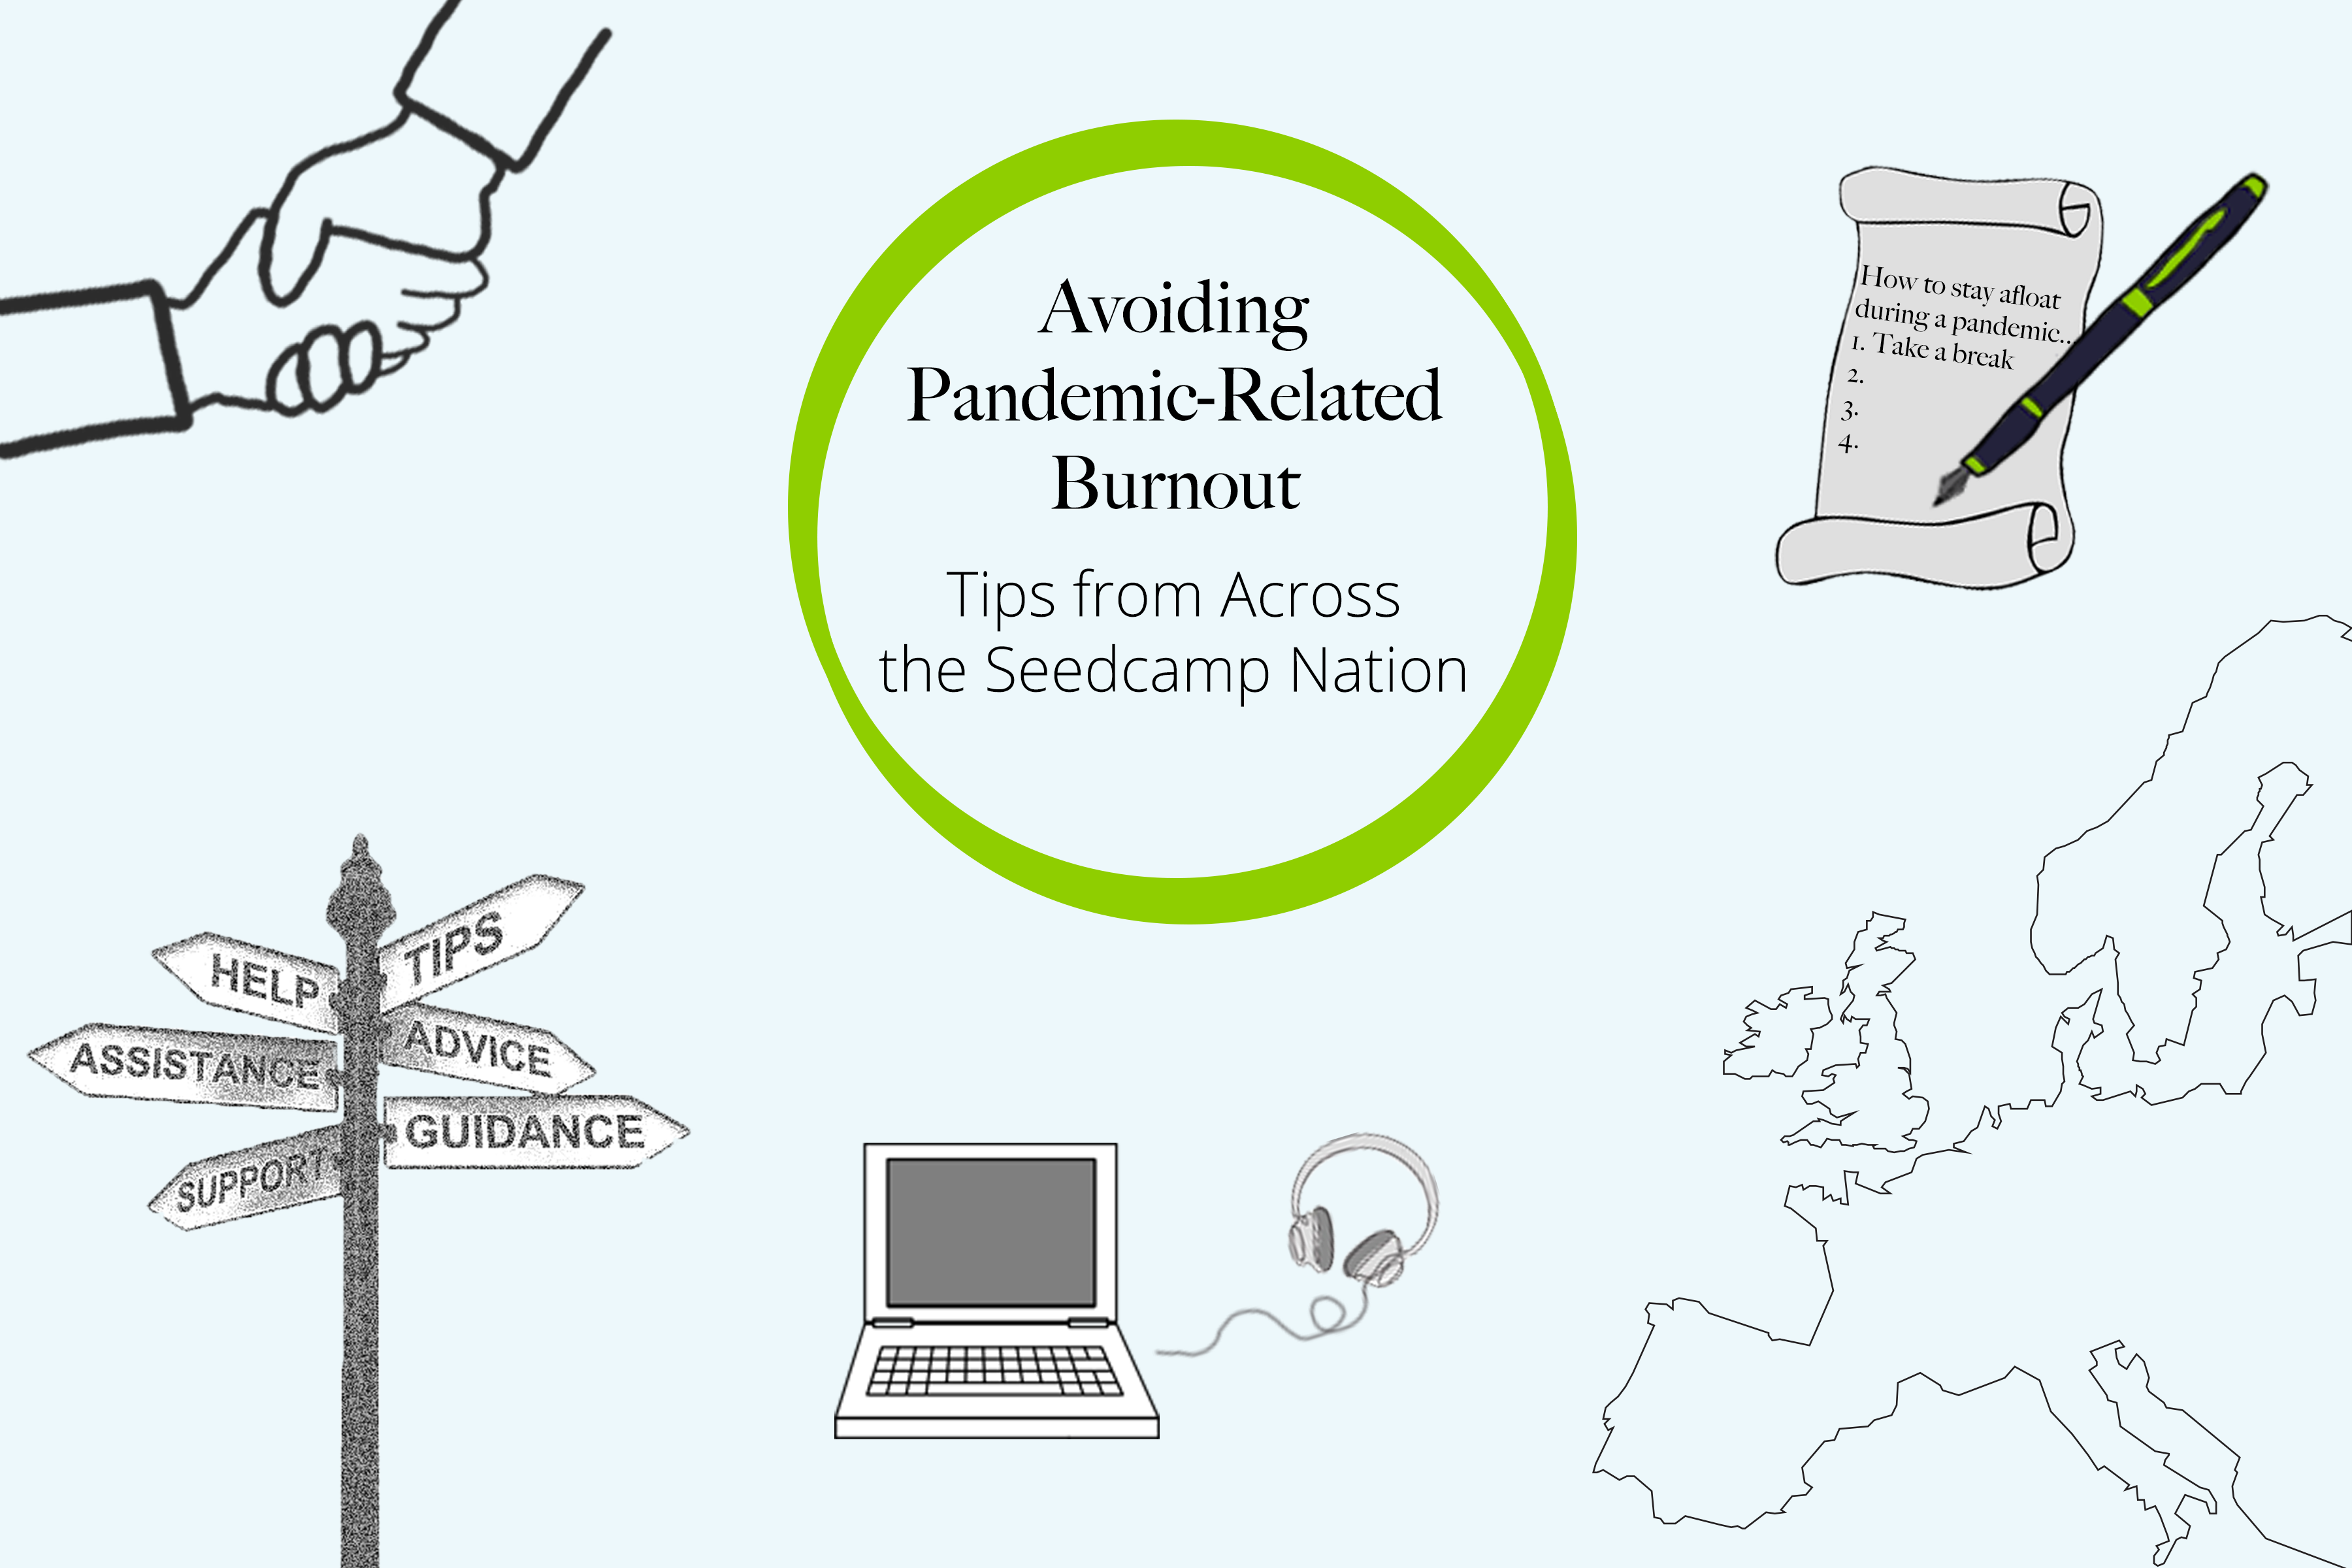 Avoiding Pandemic Related Burnout - Tips From Across the Seedcamp Nation